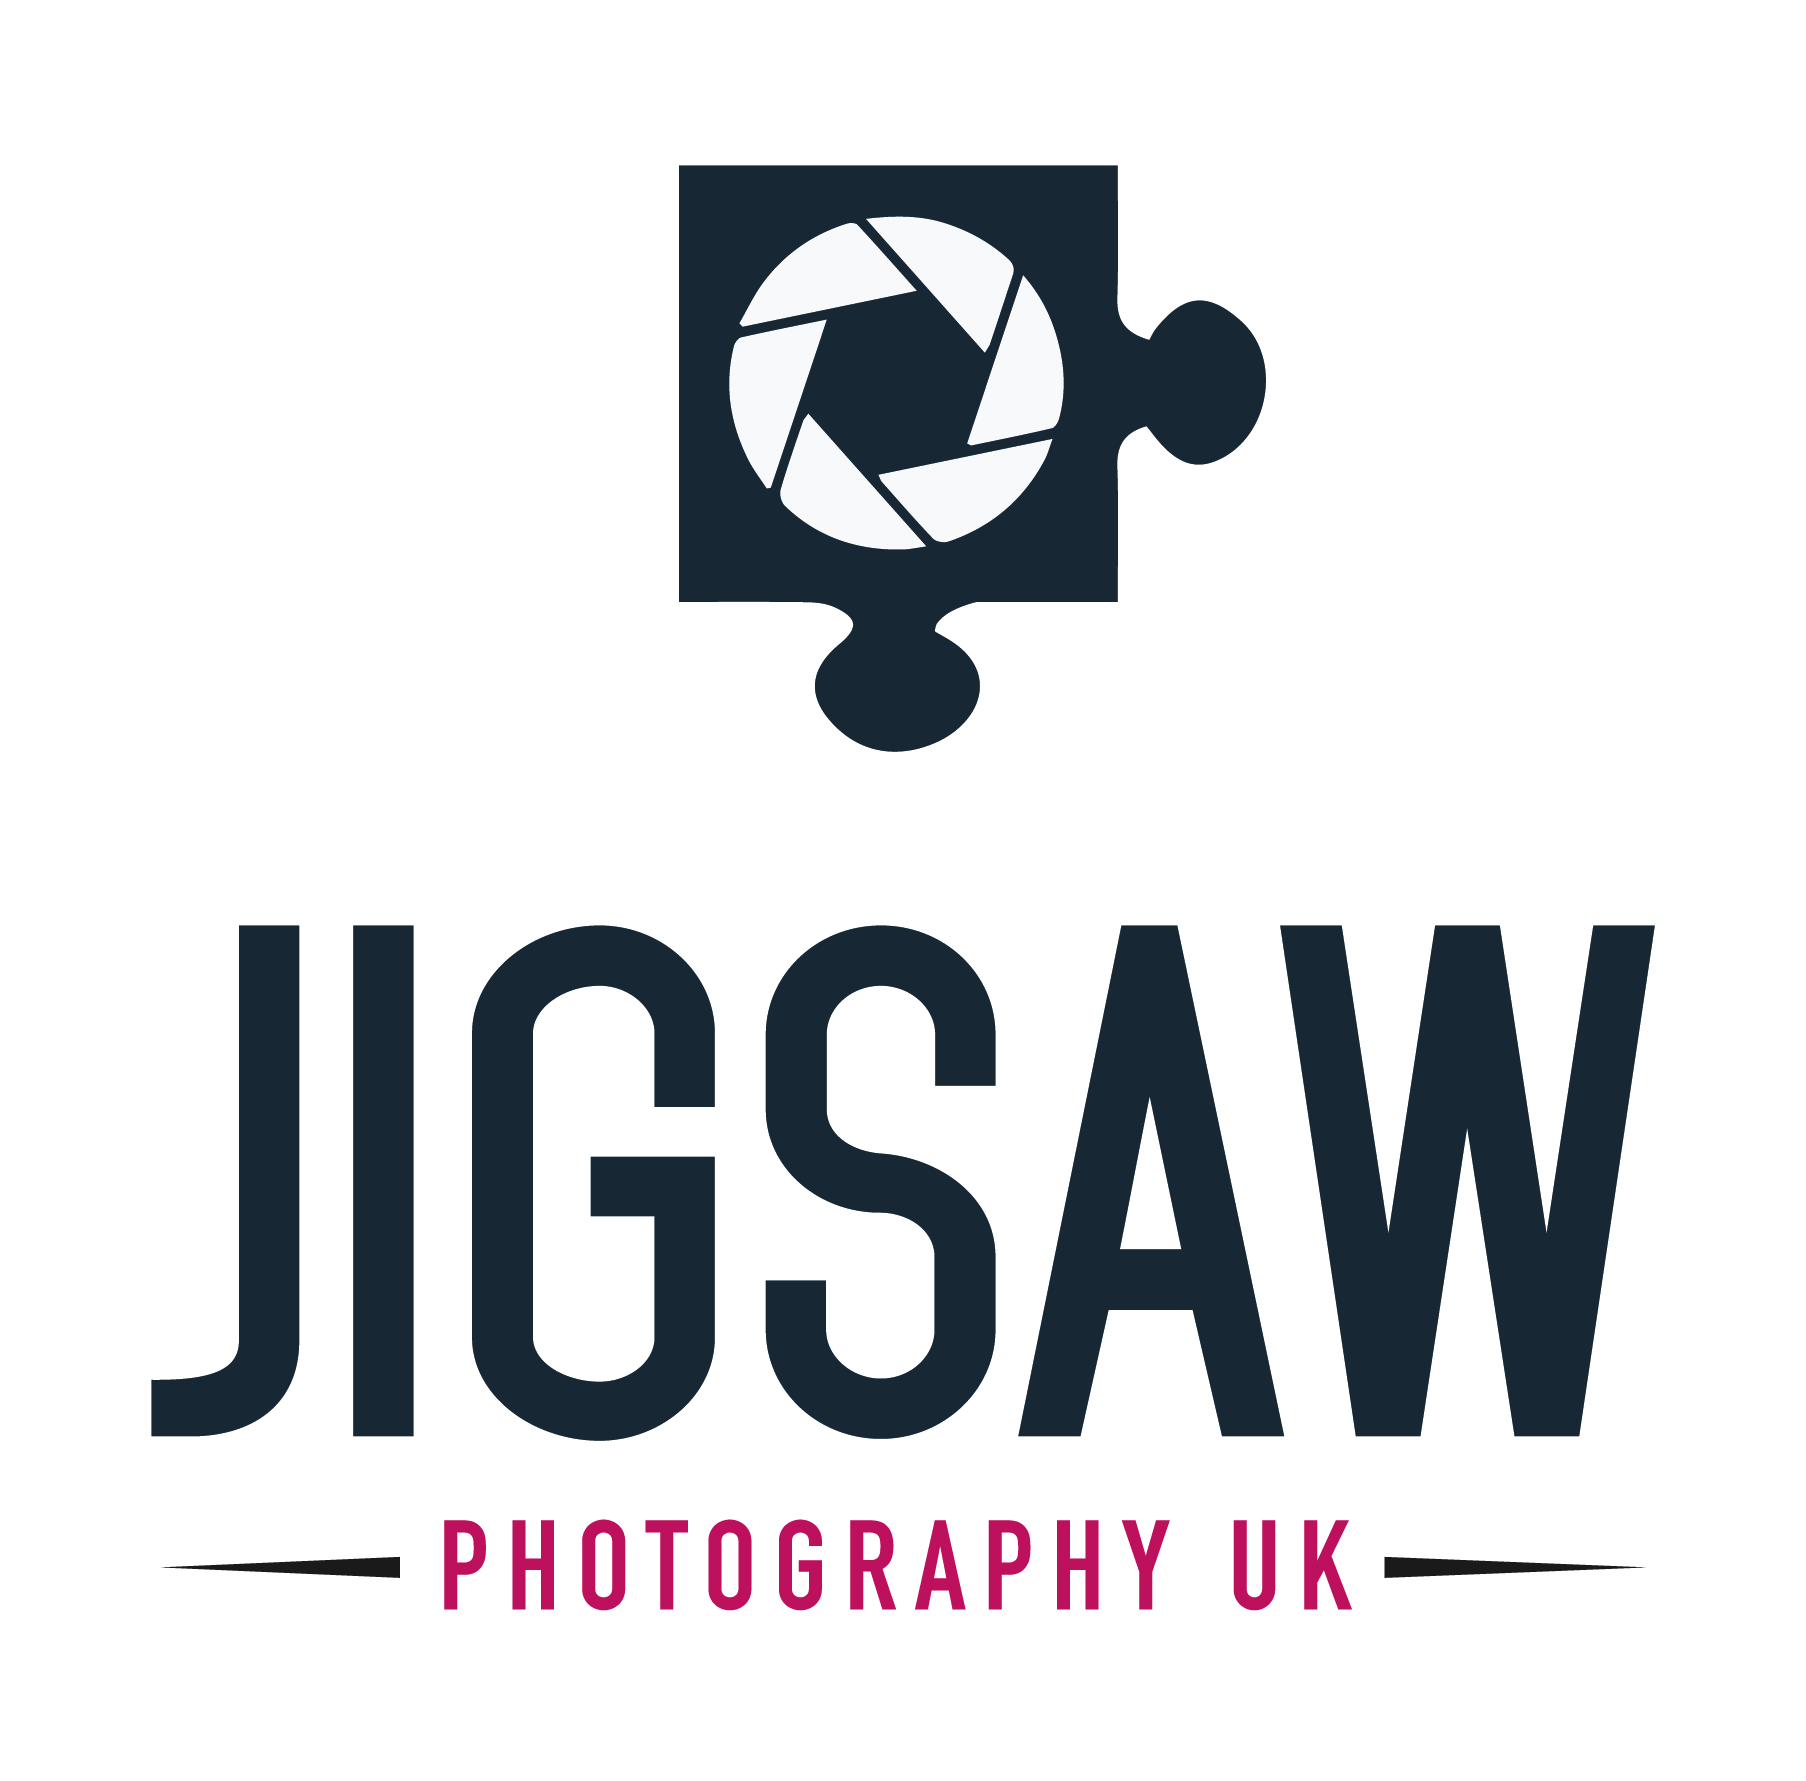 Jigsaw Photography UK